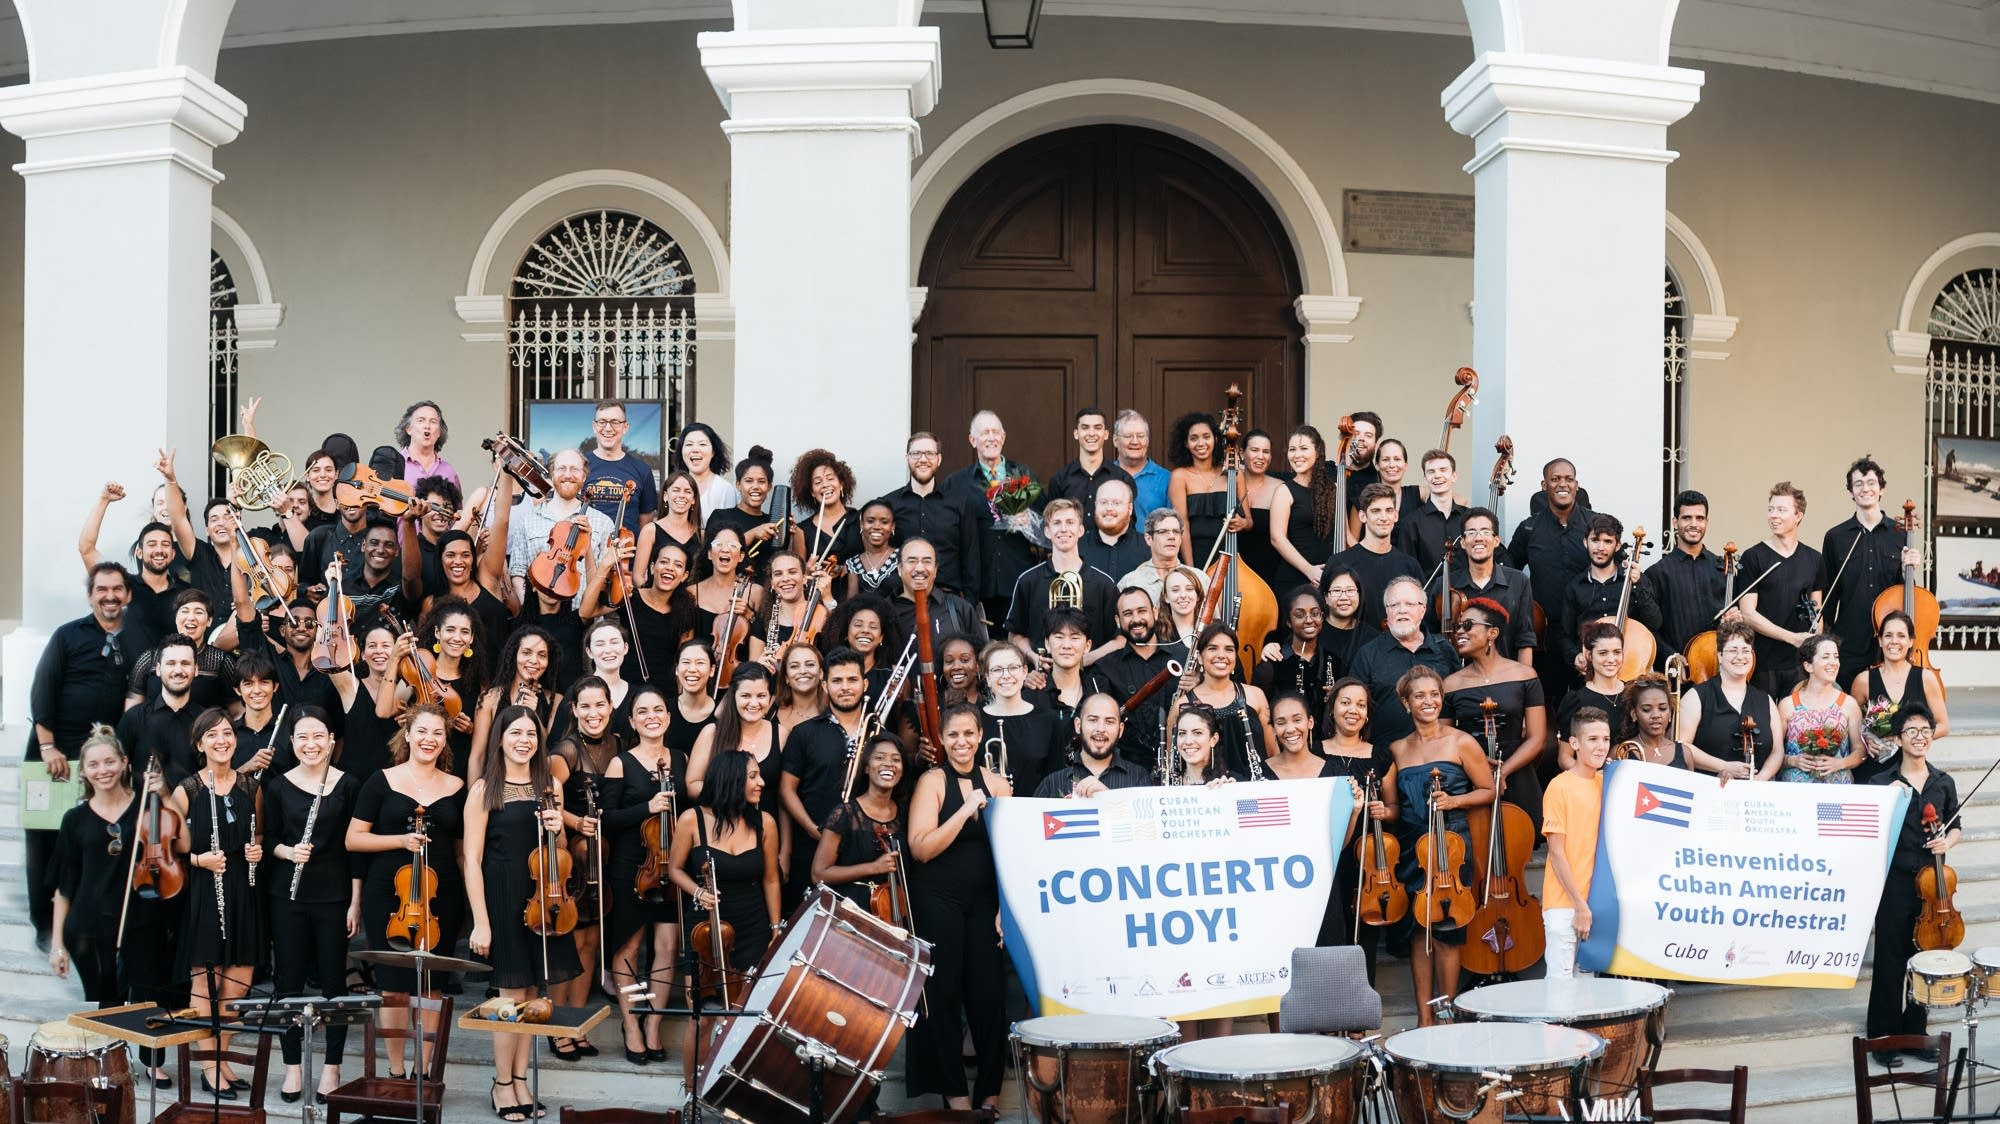 CAYO after their performance in Matanzas